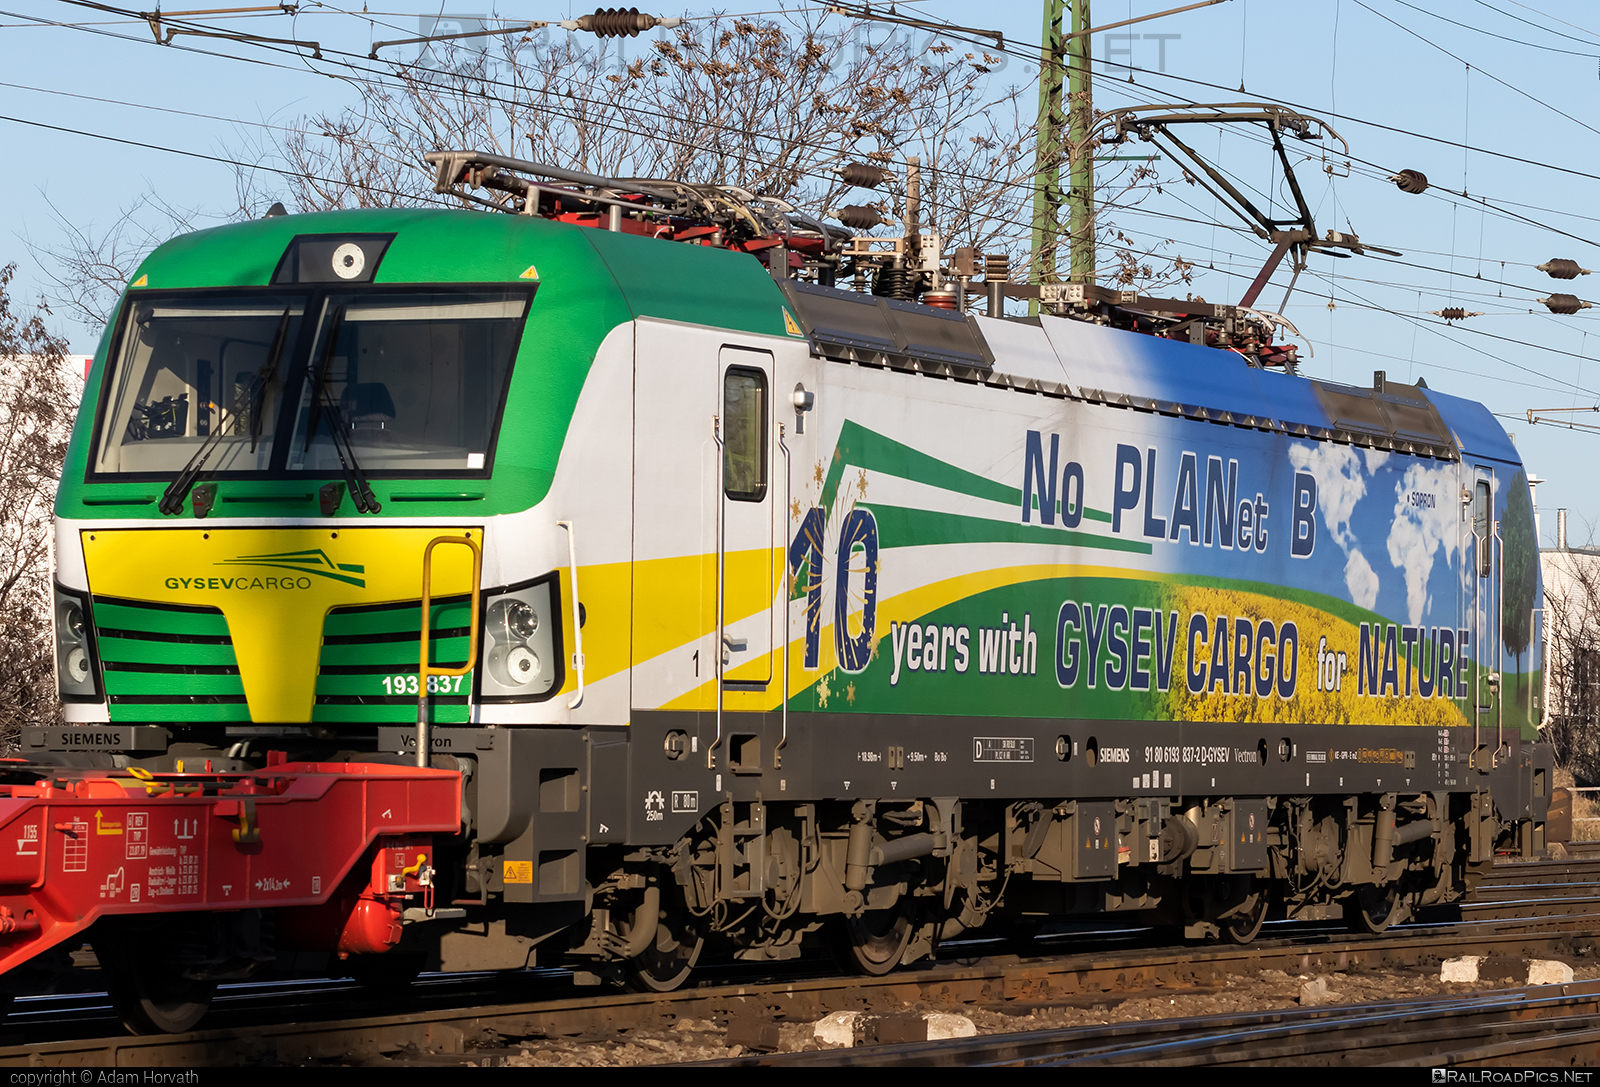 Siemens Vectron MS - 193 837 operated by GYSEV Cargo Zrt #gysev #gysevcargo #siemens #siemensvectron #siemensvectronms #vectron #vectronms